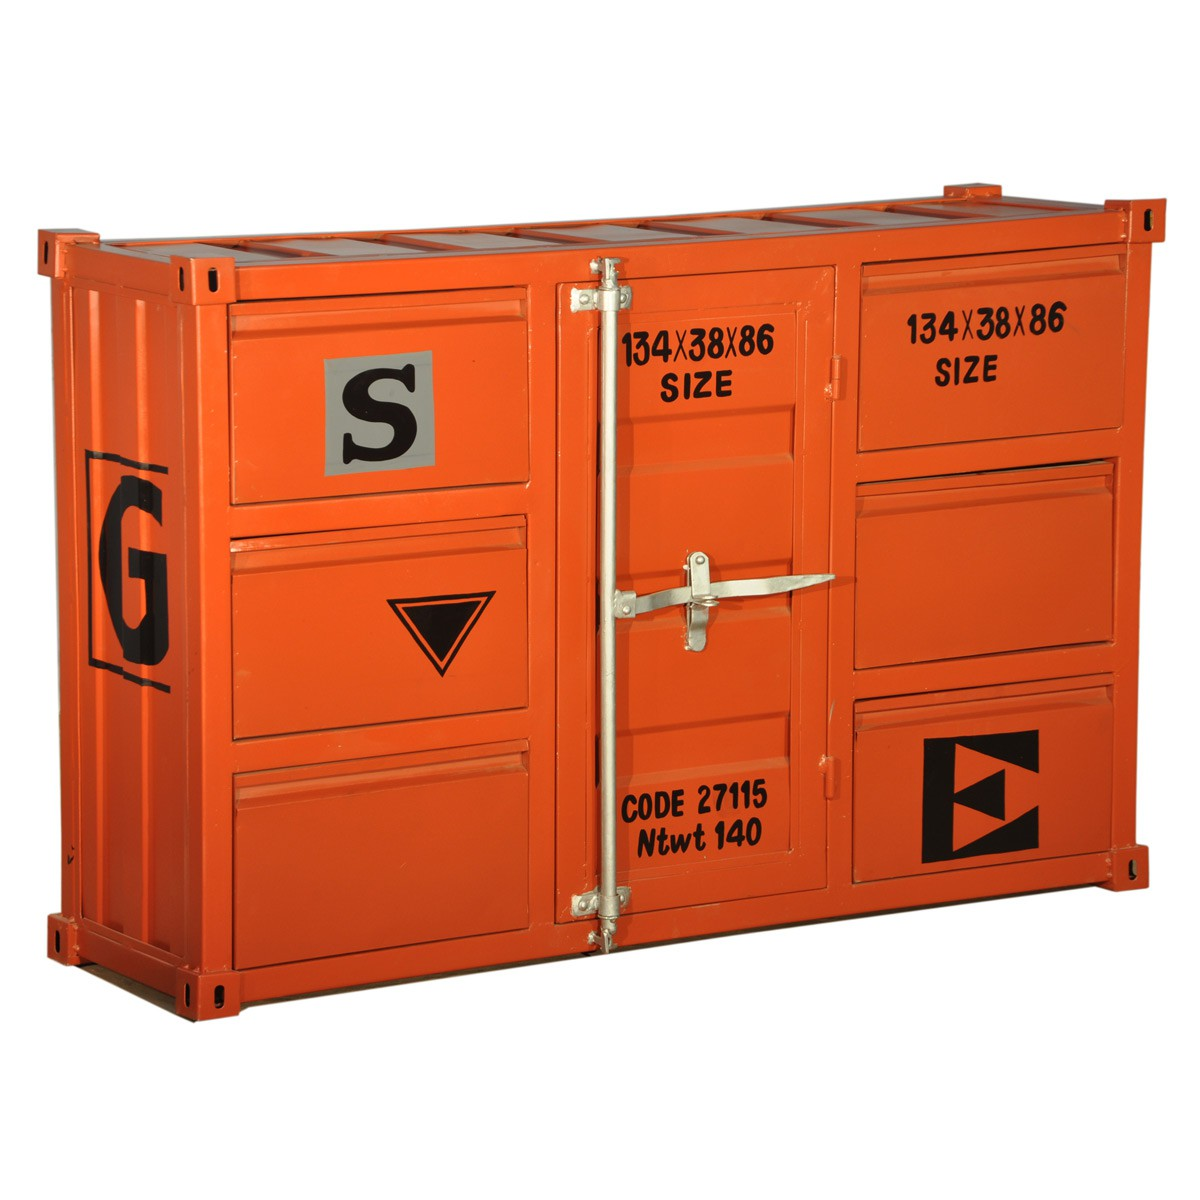 ts ideen kommode schrank roll container shabby orange gelb. Black Bedroom Furniture Sets. Home Design Ideas